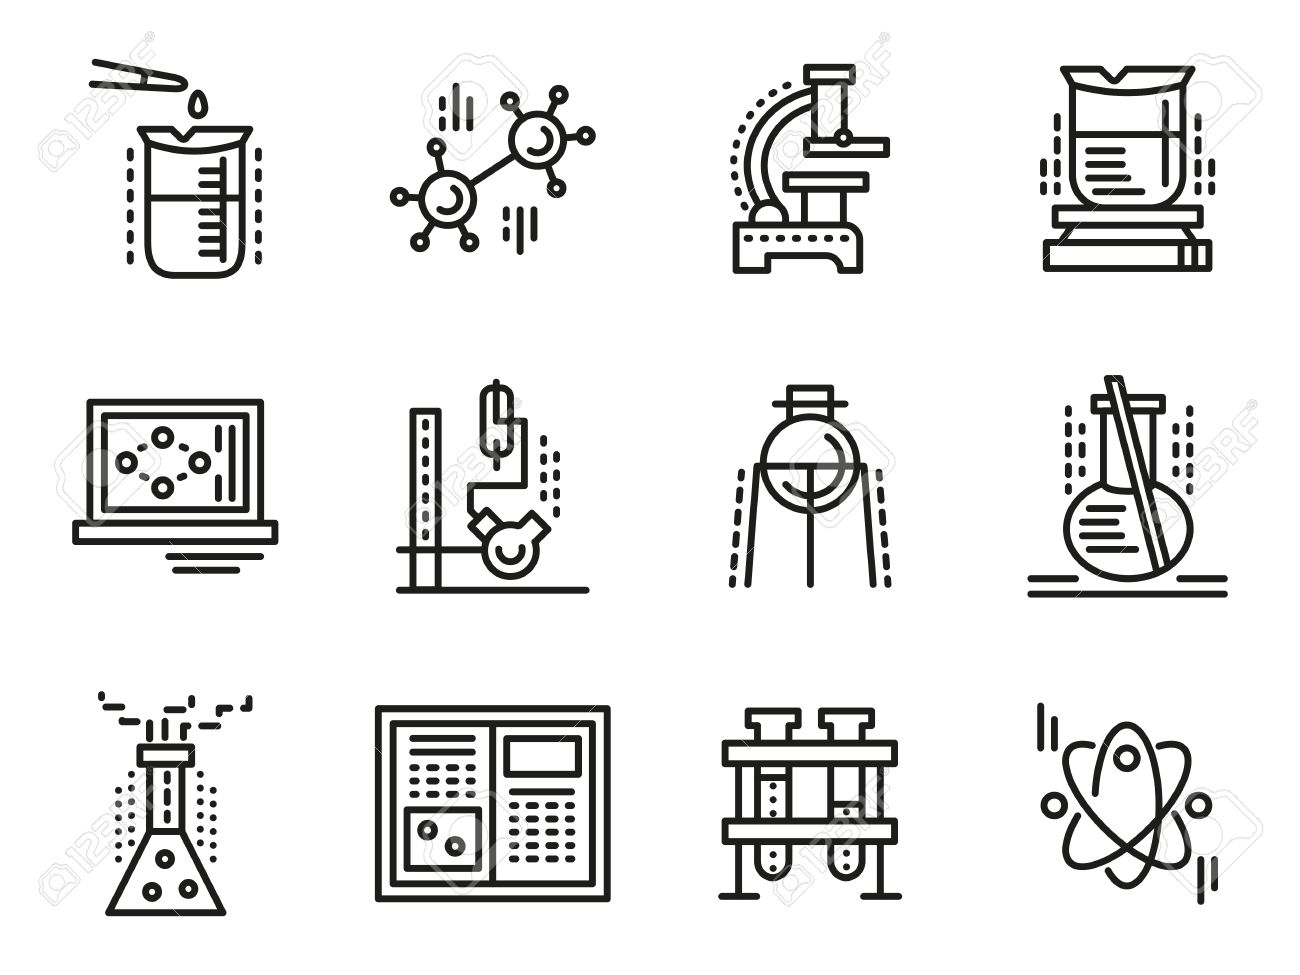 Chemistry objects symbols for education simple line vector chemistry objects symbols for education simple line vector icons set test tubes buycottarizona Images